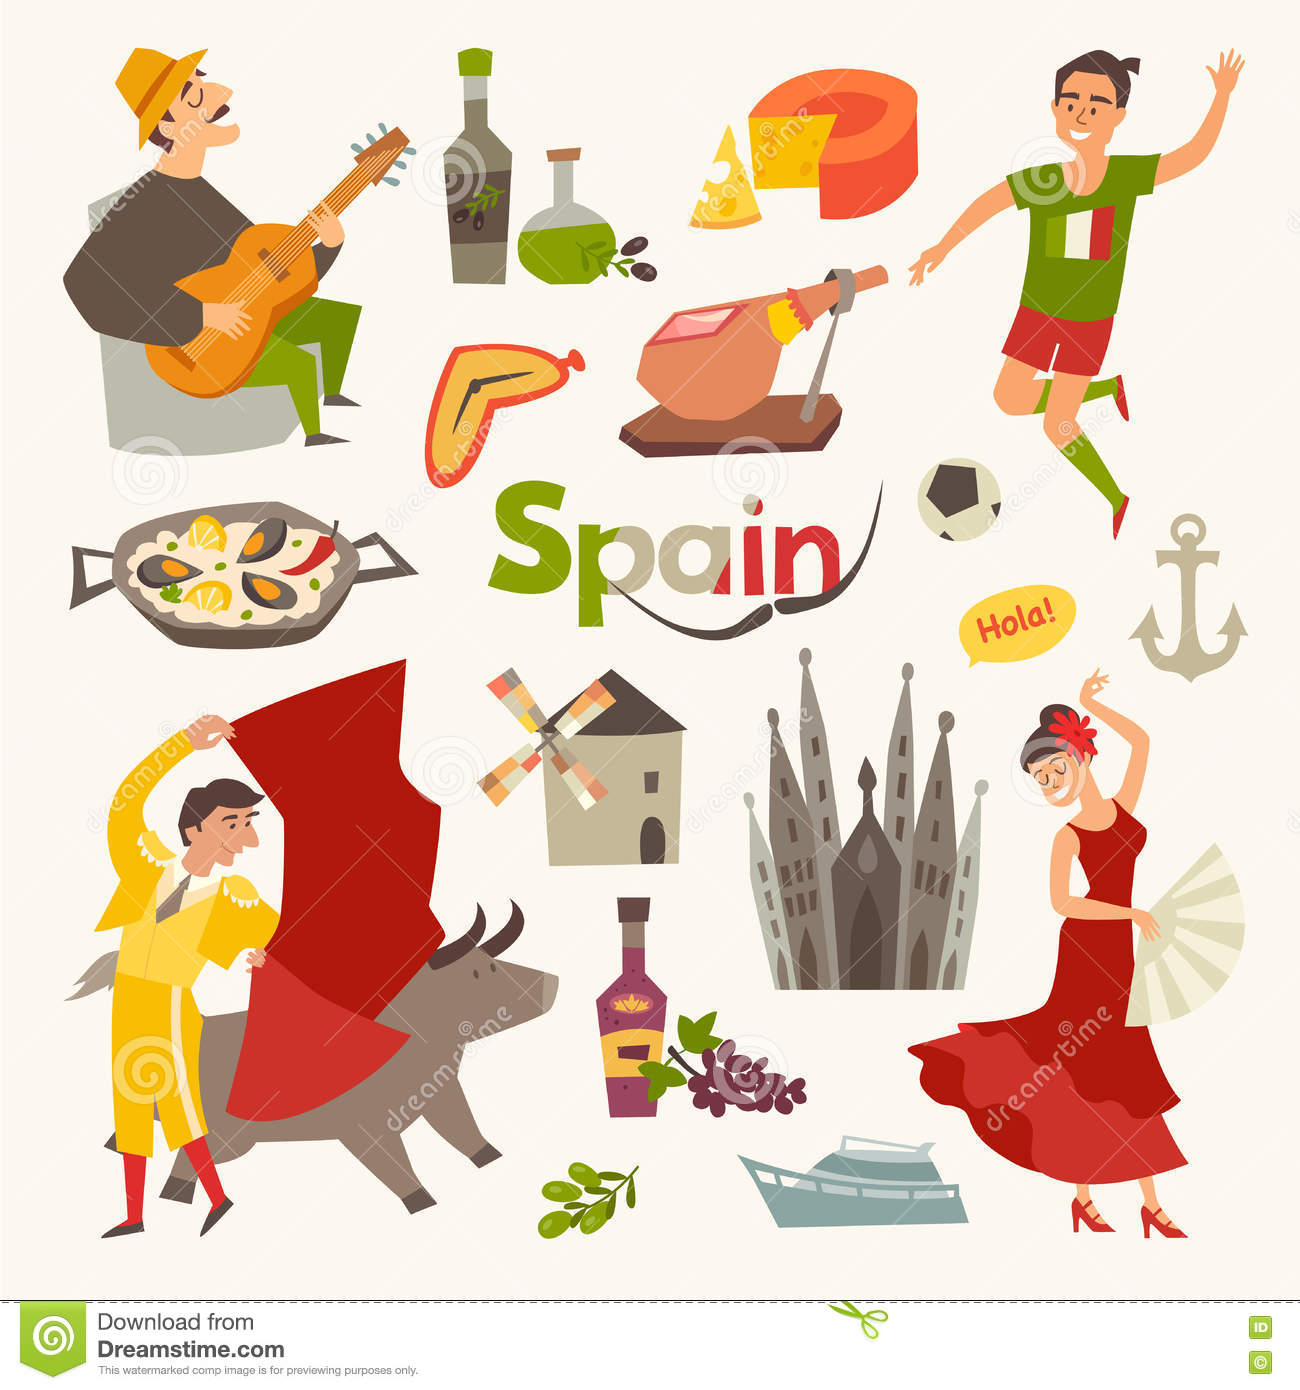 how to say tourist in spanish